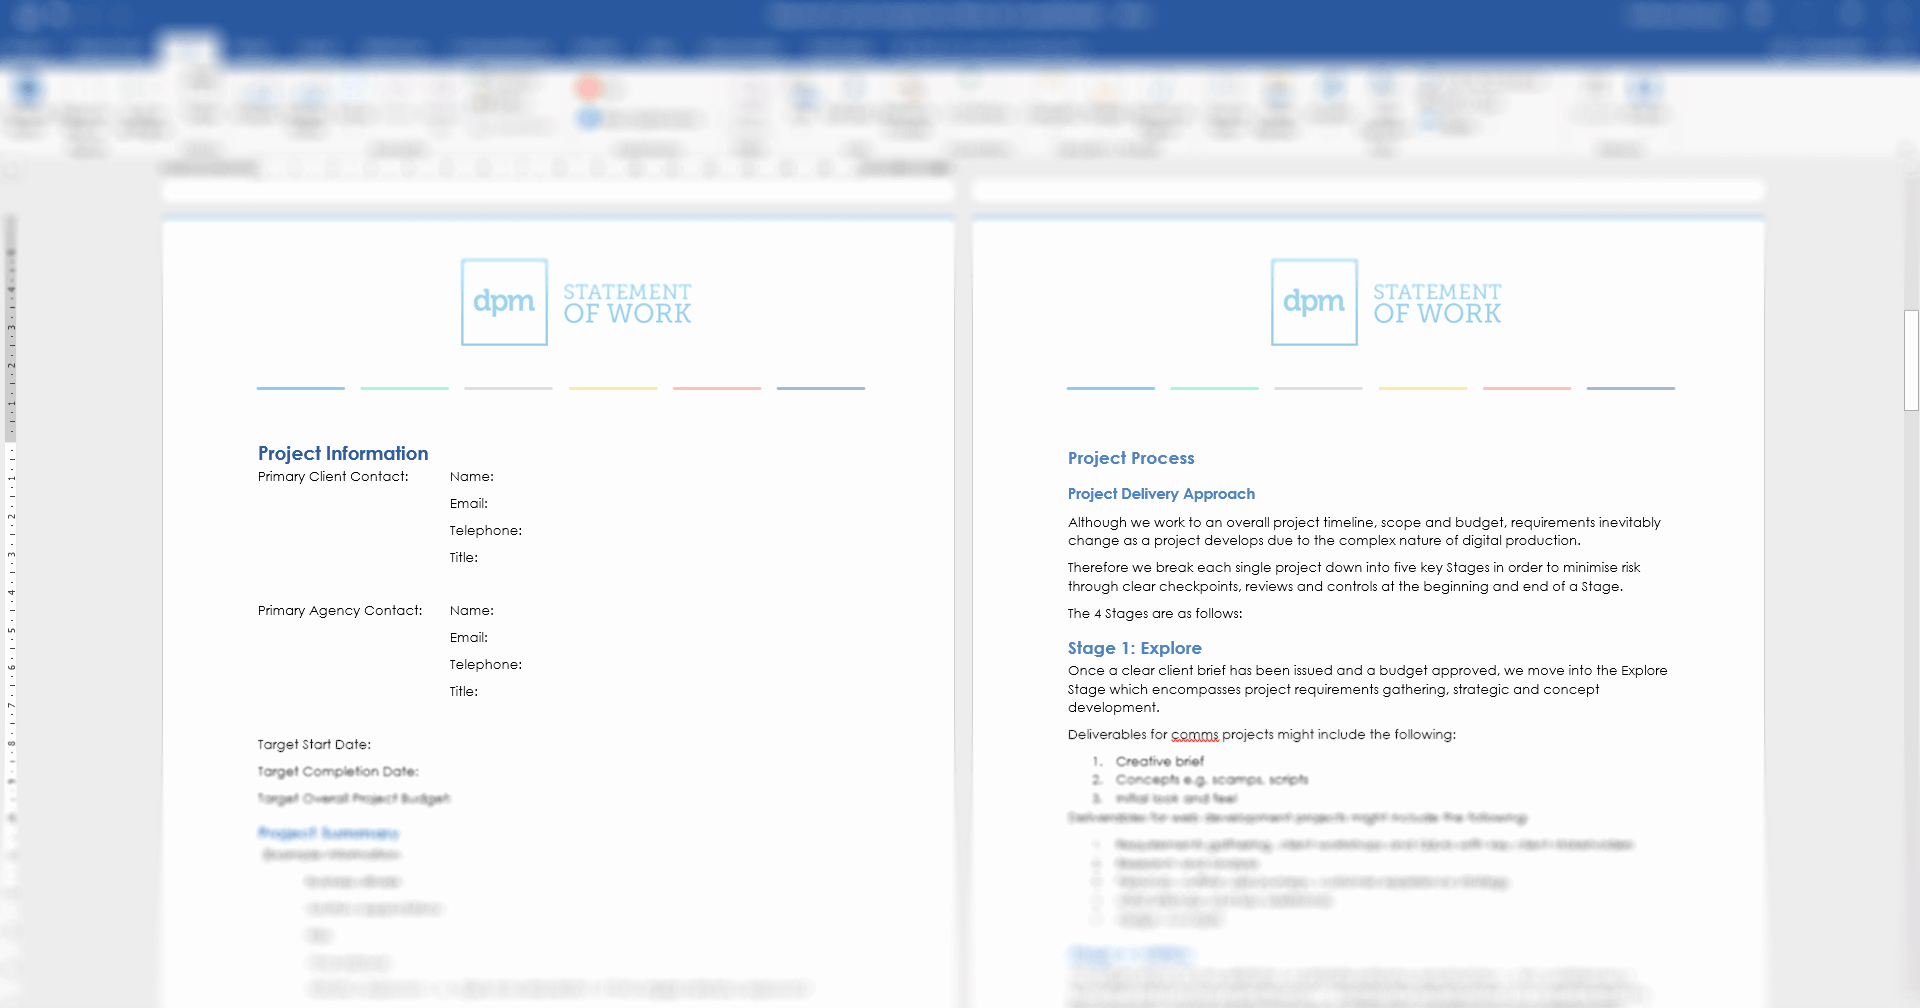 Sow Template Doc Fresh Write A Statement Work the Easy Way with A Free